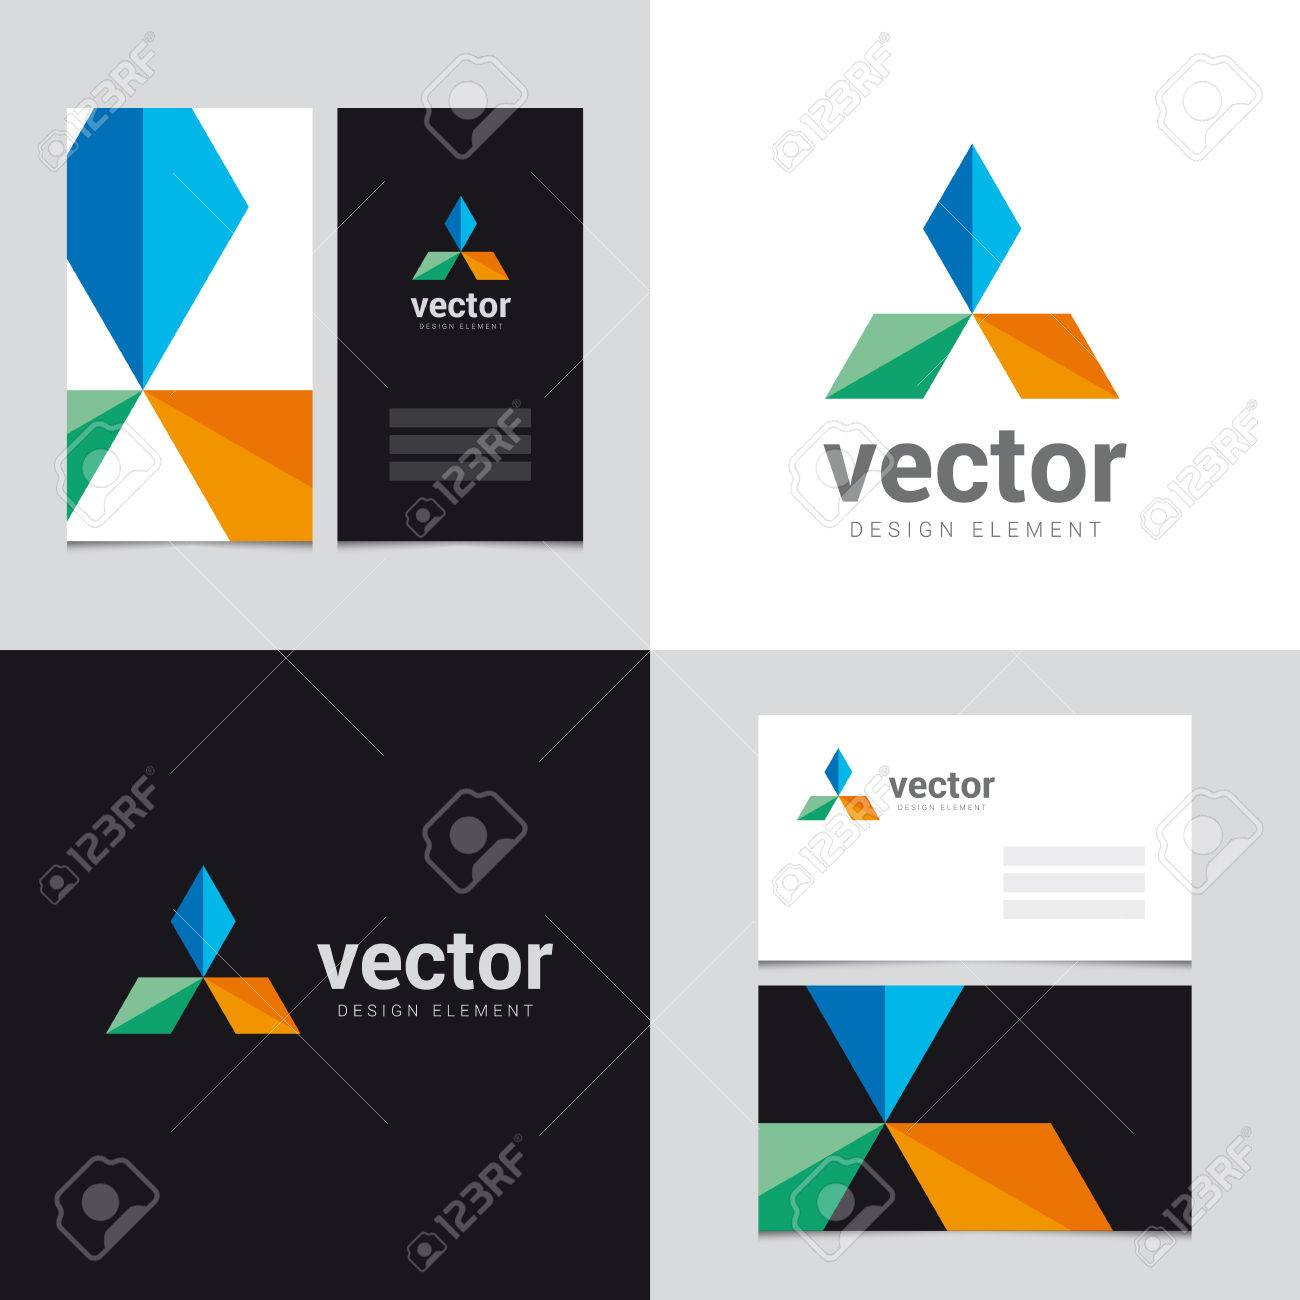 Logo design element with two business cards template 25 vector logo design element with two business cards template 25 vector graphic design elements for reheart Gallery